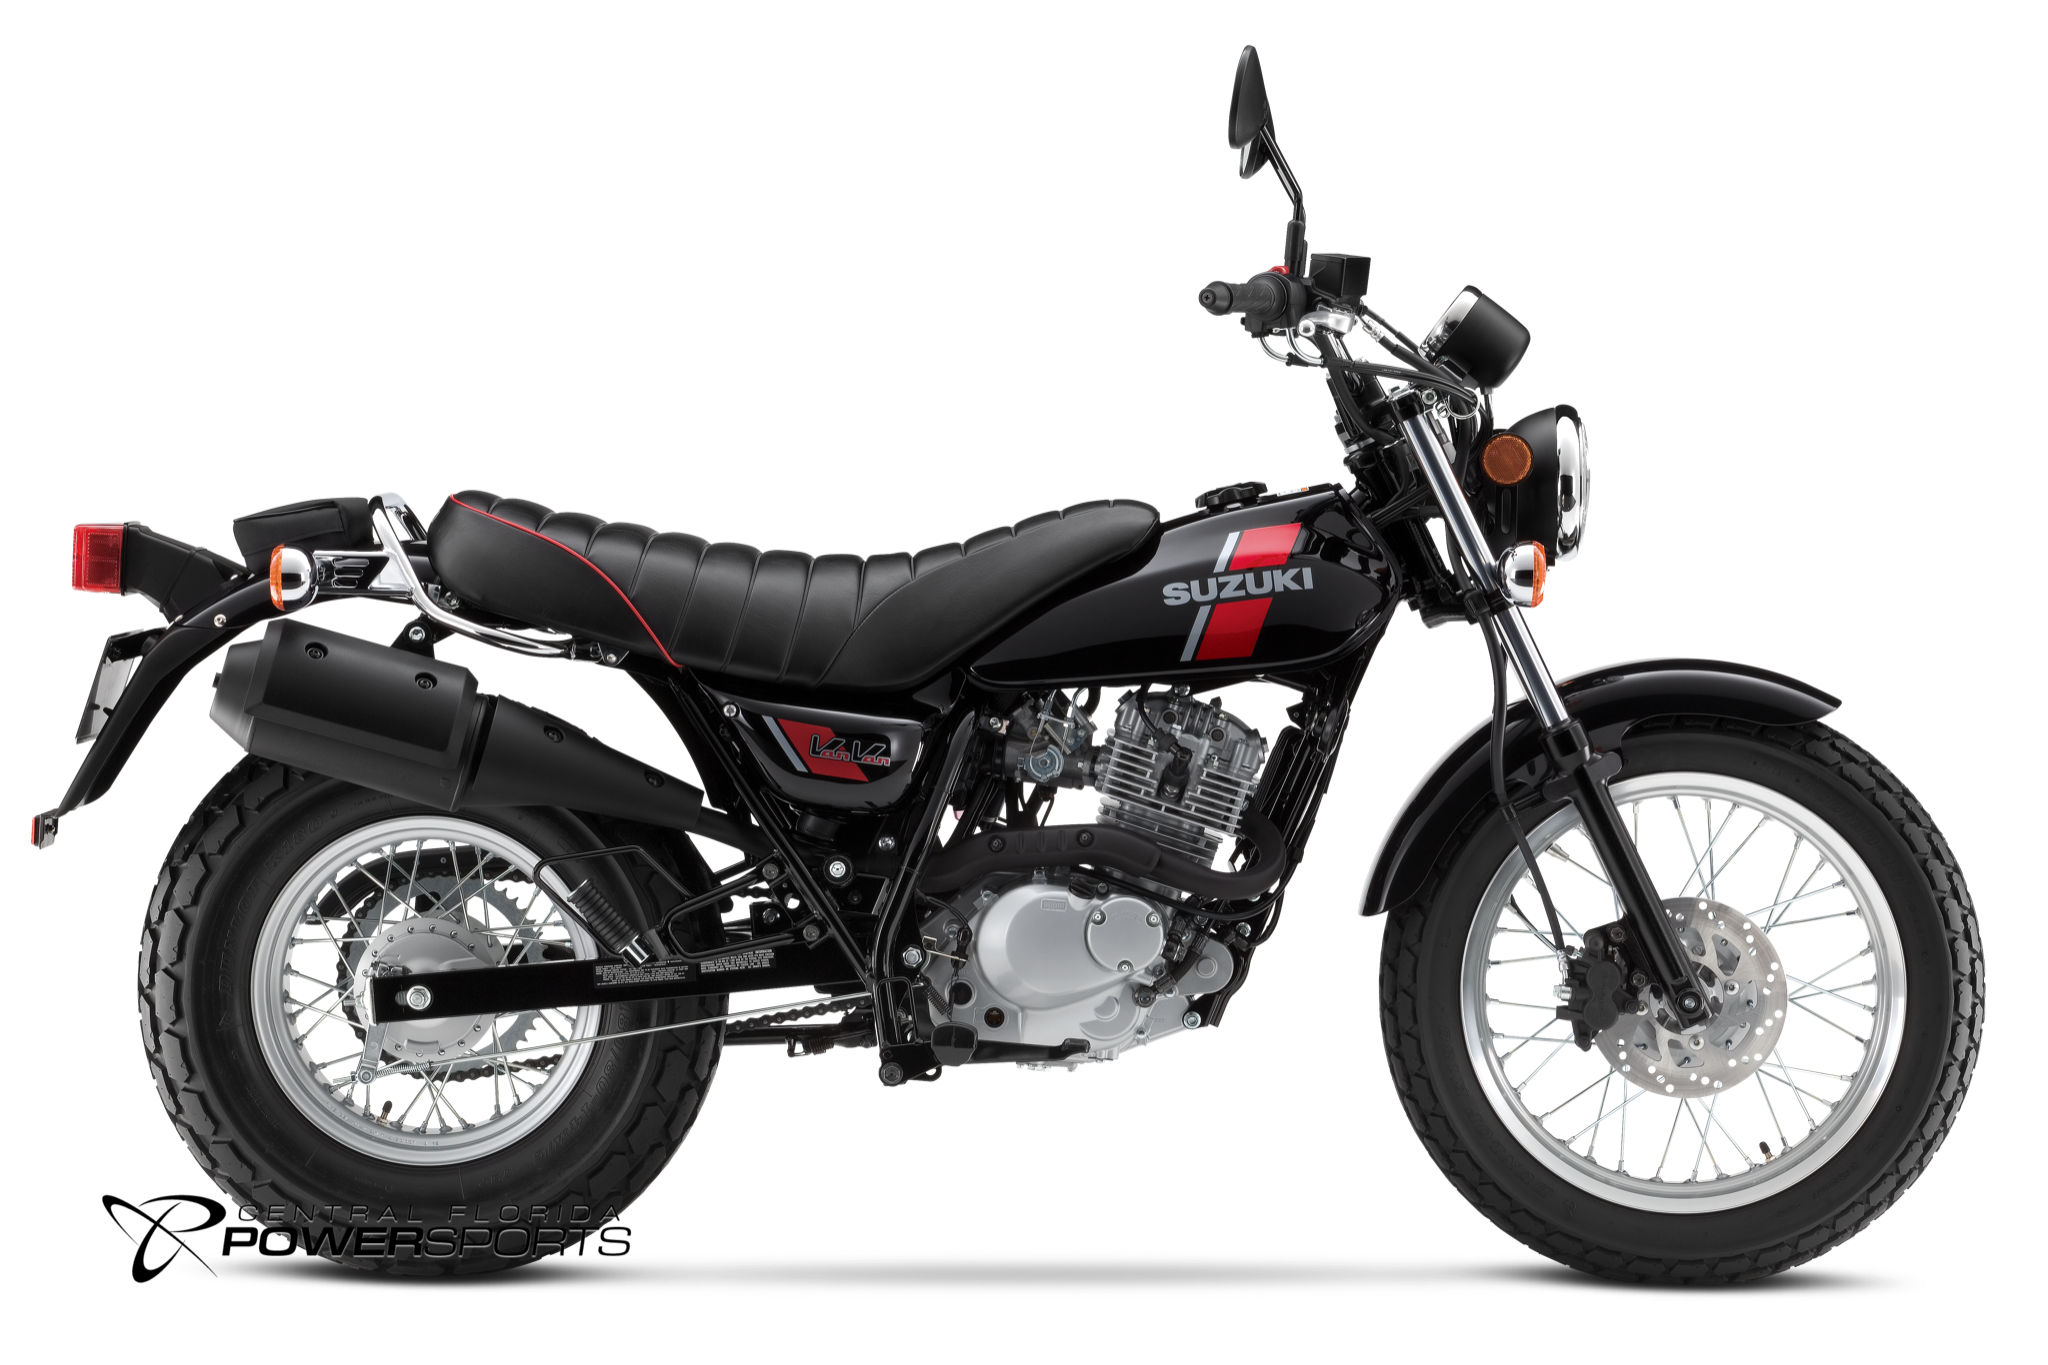 2018 suzuki vanvan 200 motorcycle for sale - orlando, fl bike